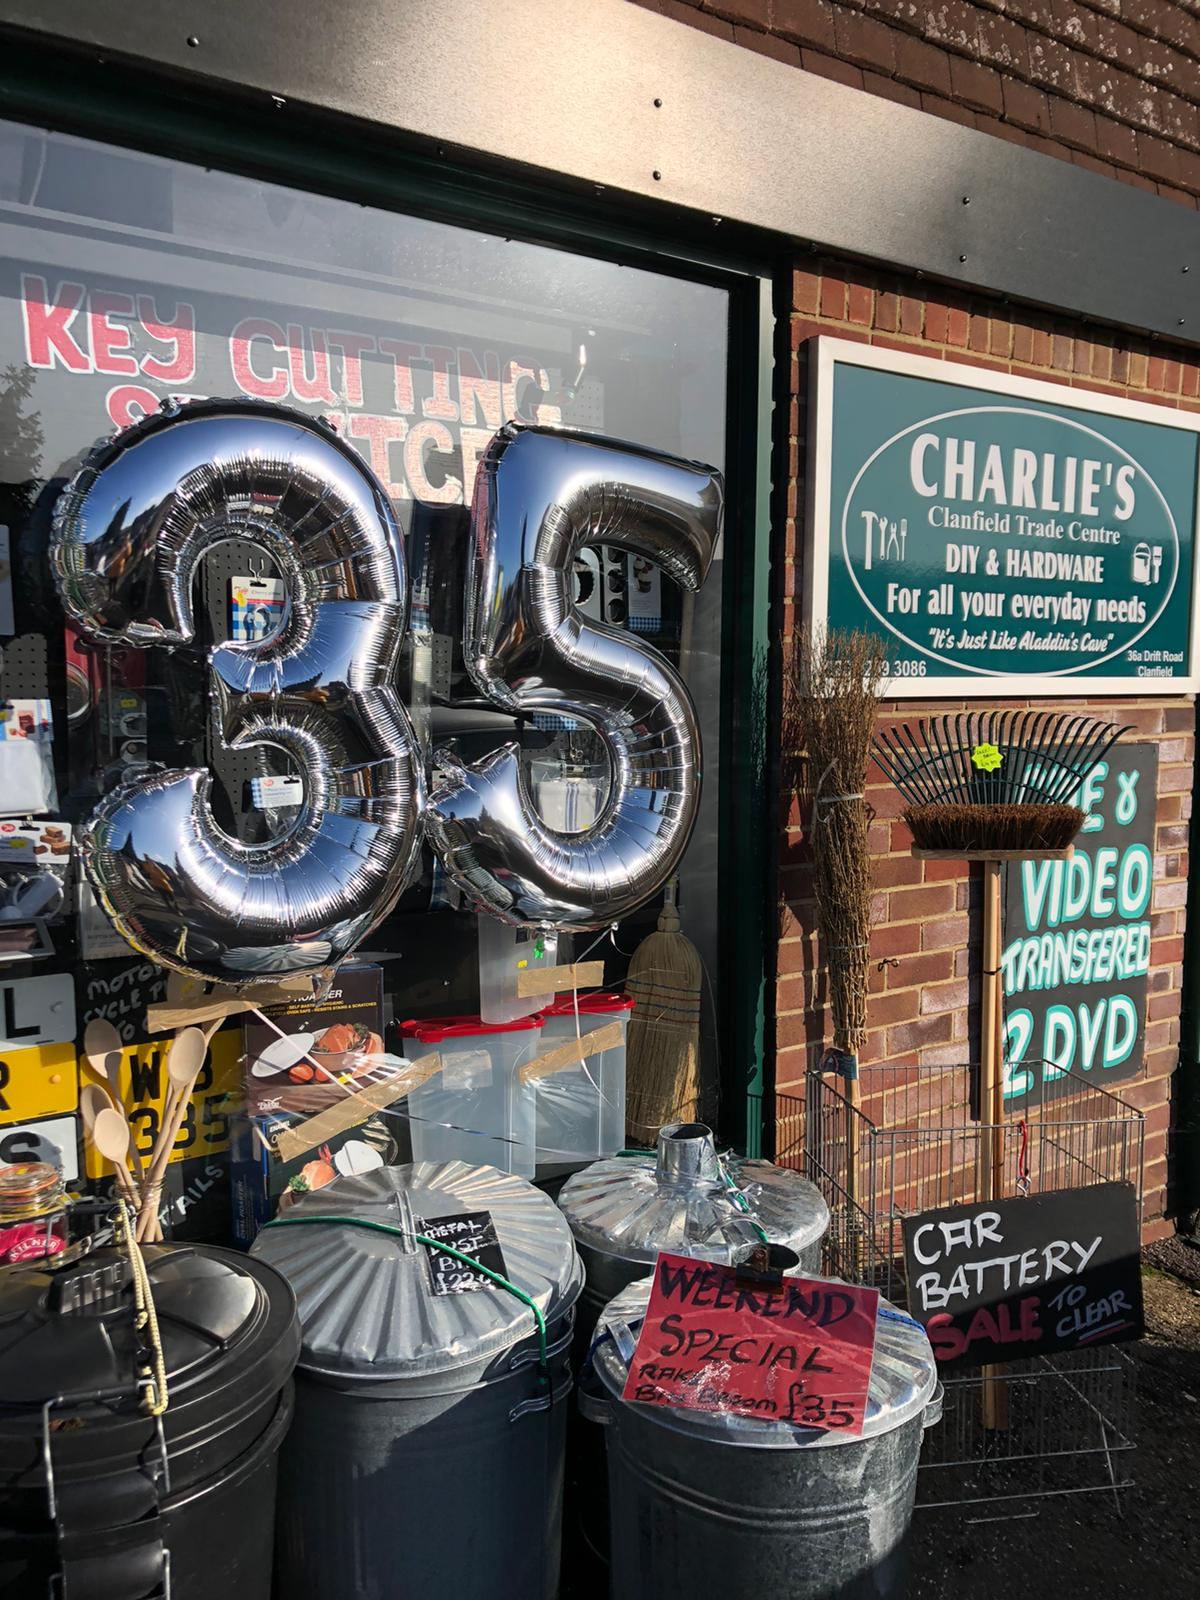 Charlie's Clanfield Trade Centre celebrates 35 years!